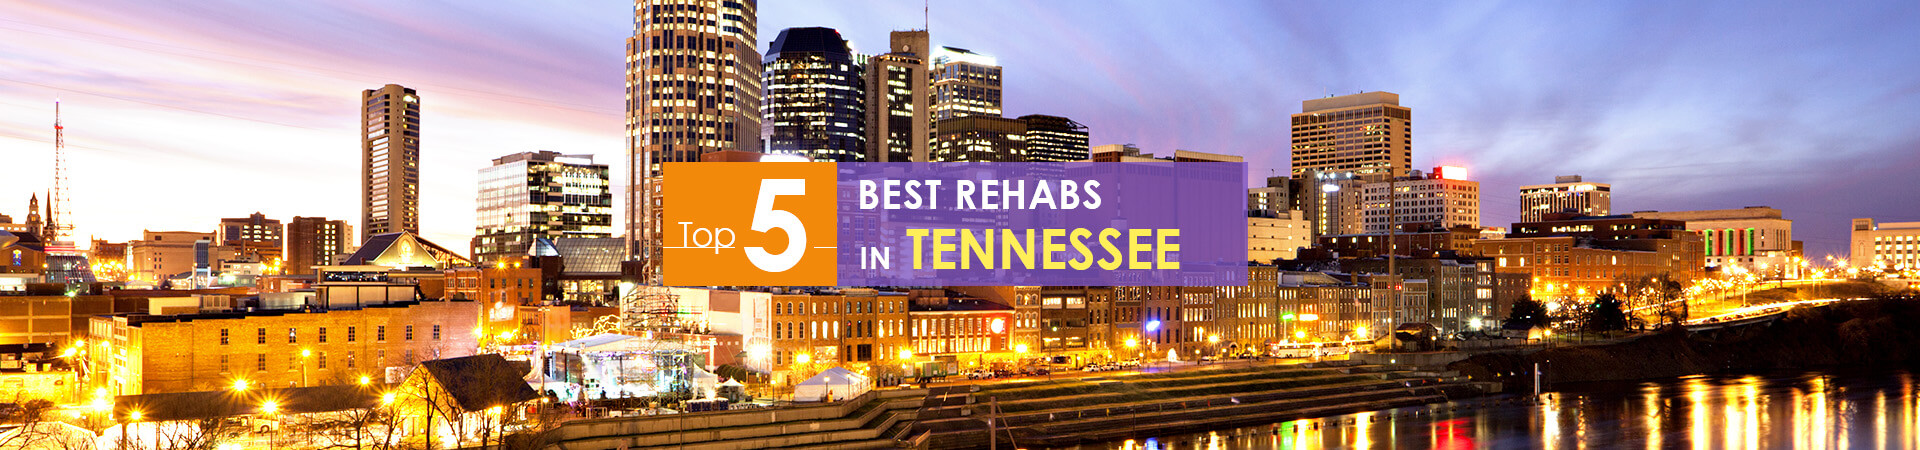 Tennessee night view and top 5 rehabs caption